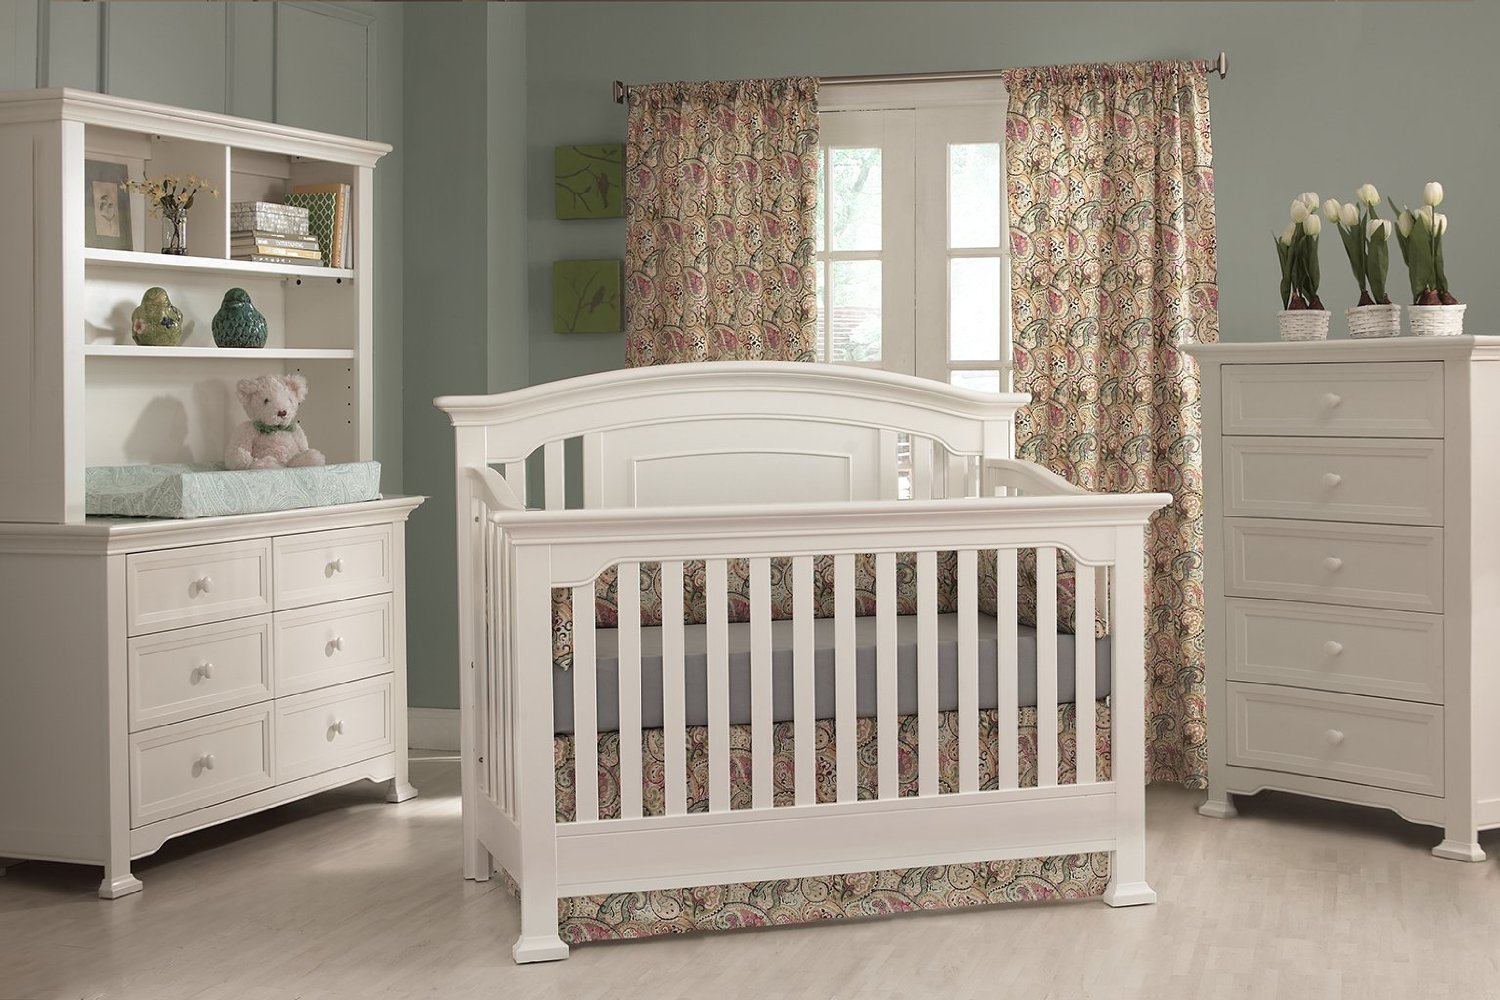 Cheap Baby Furniture Medford Crib From Munire Baby Furniture Project Nursery